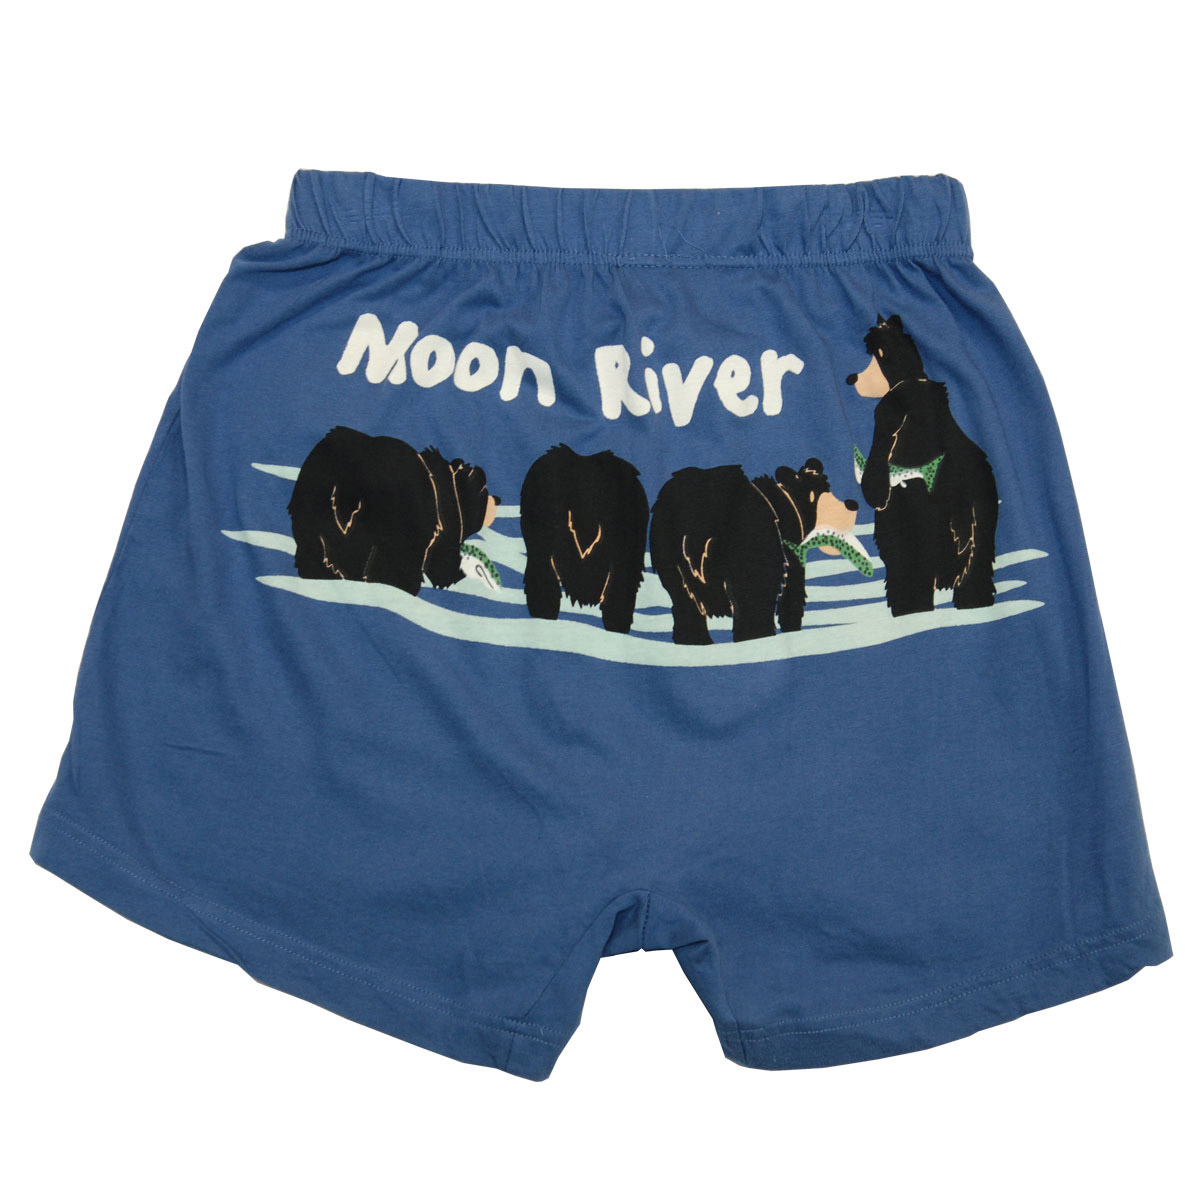 Boxers - Moon River